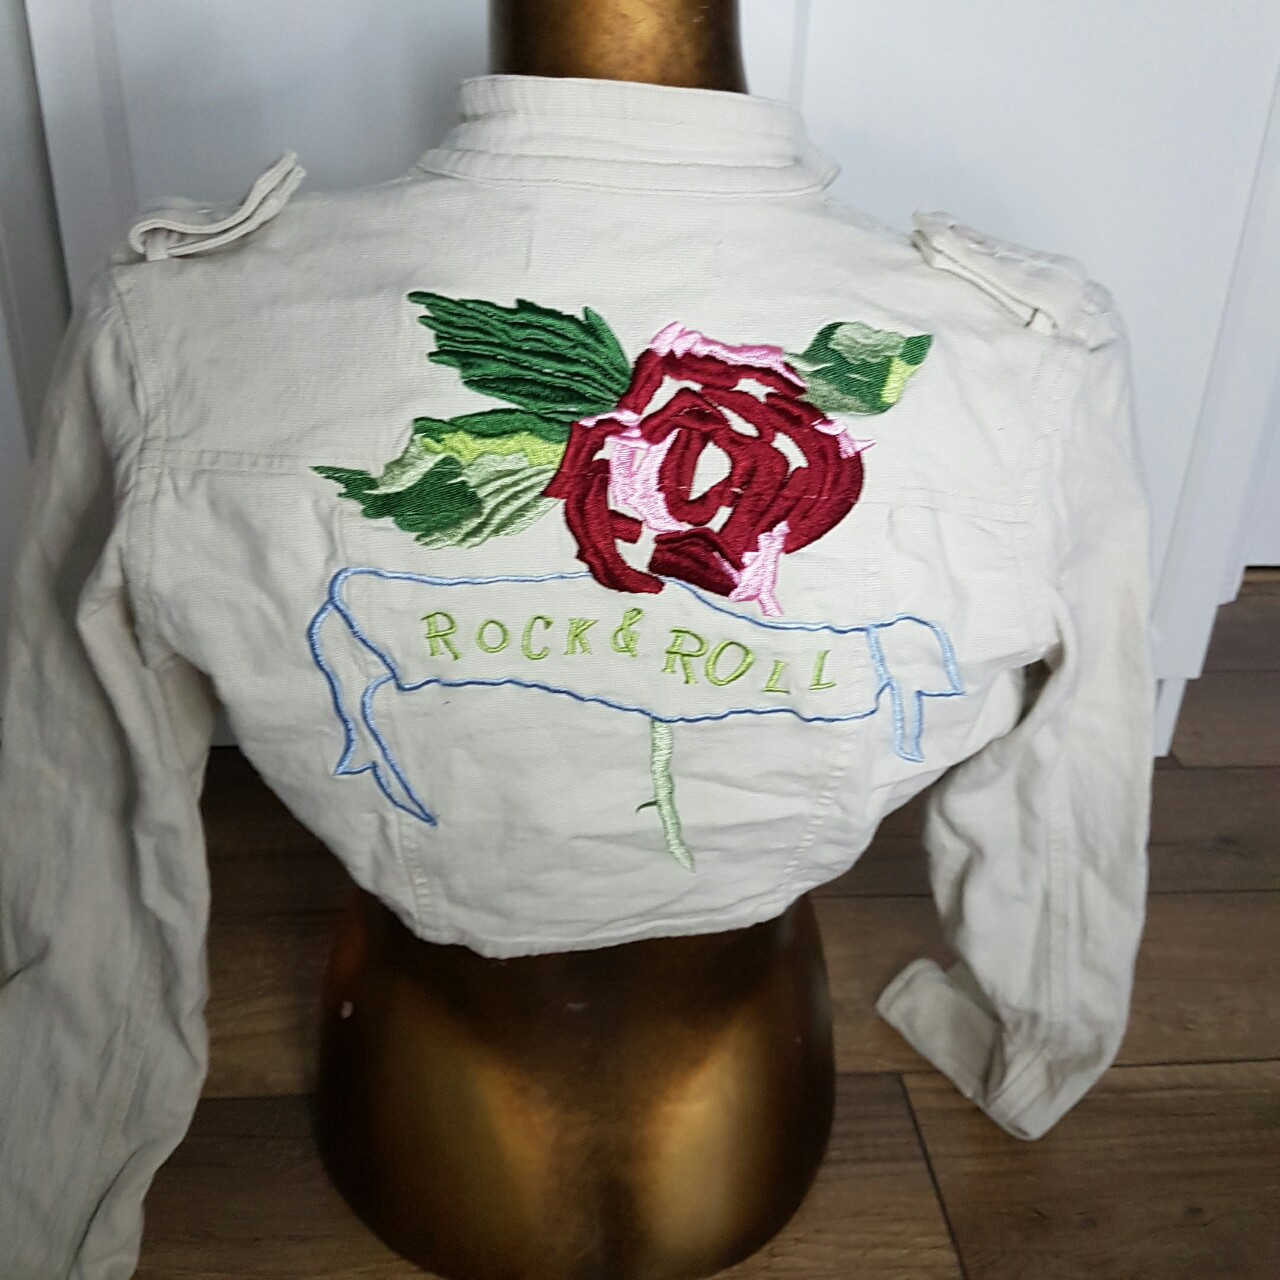 Product Image 1 - Amemrican jeans rock n roll